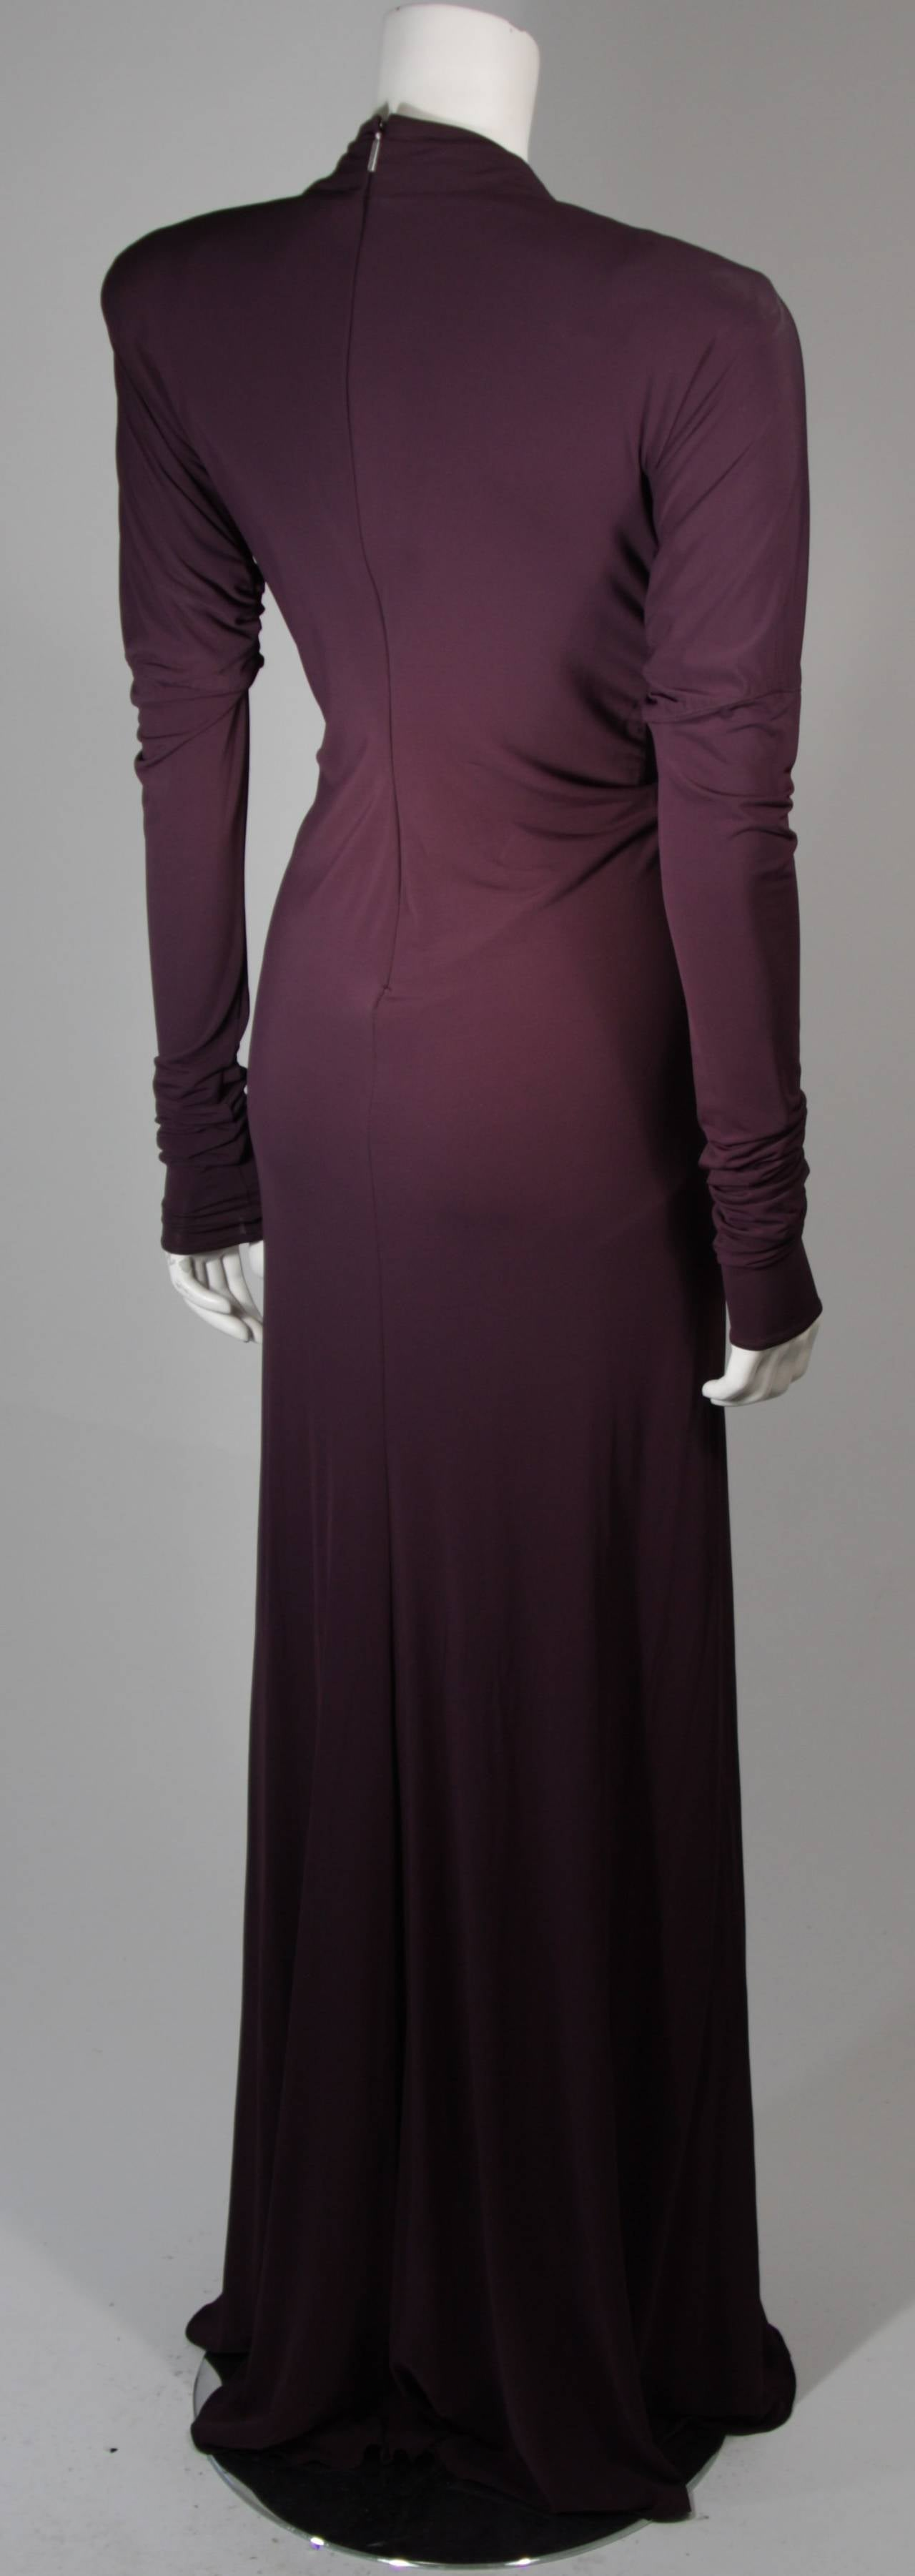 Roberto Cavalli Aubergine Long Sleeve Jersey Gown with Embellishments Size 40 8